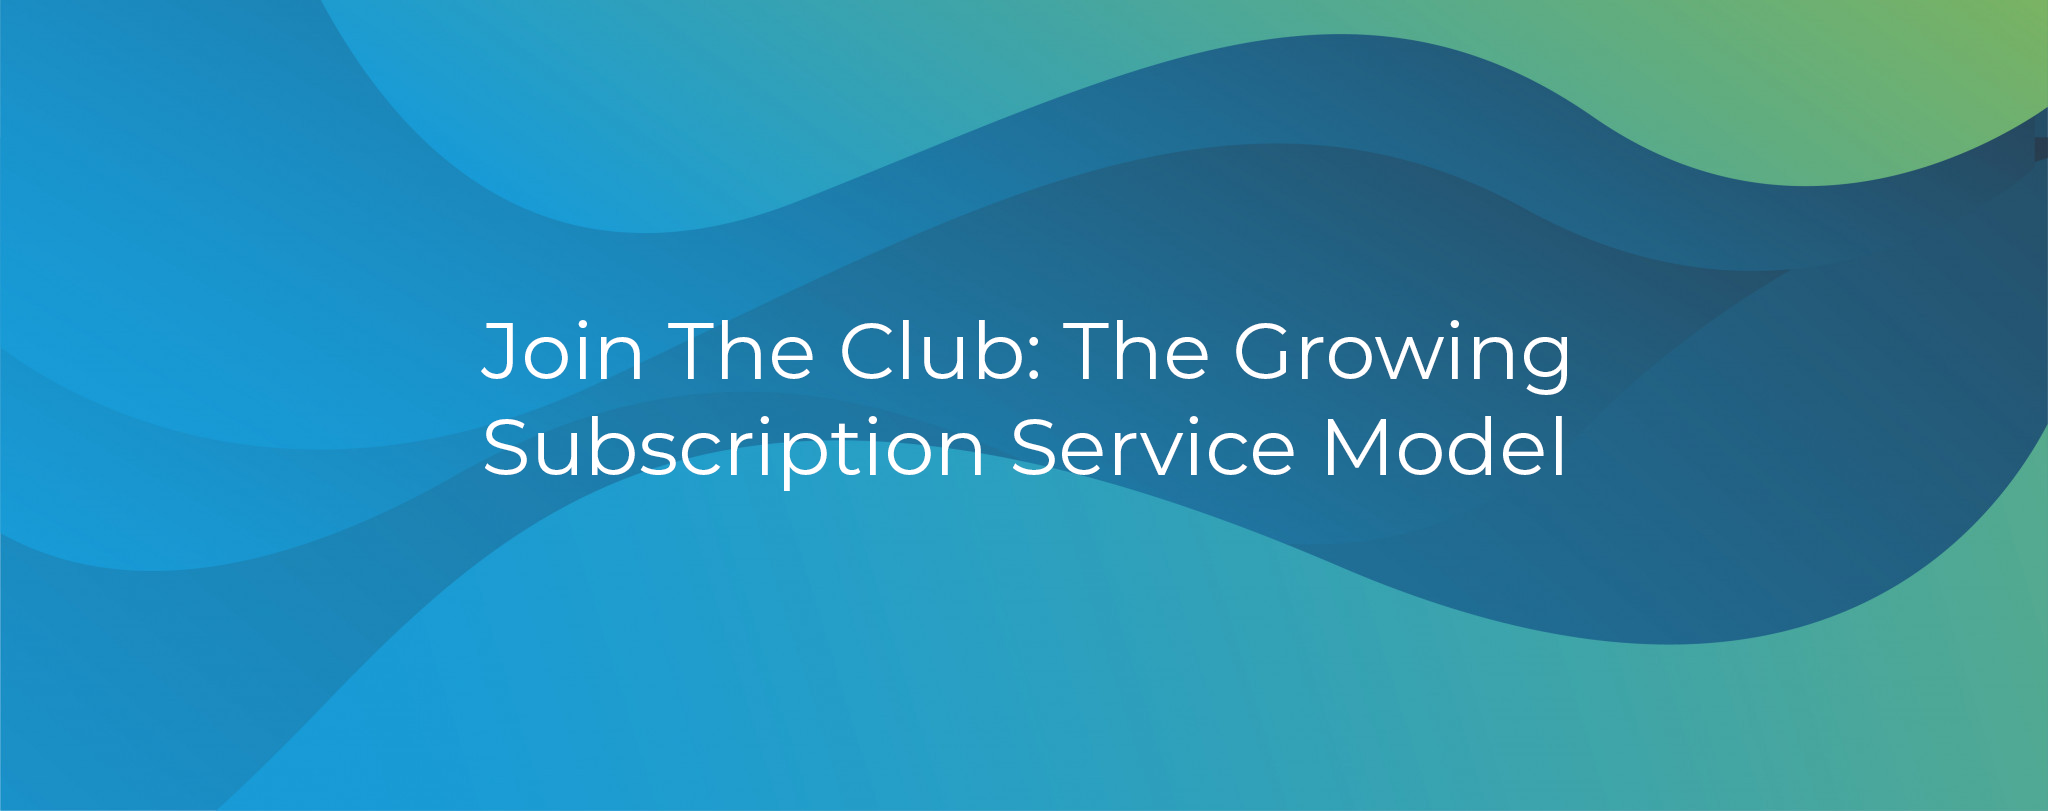 Join the Club: The Growing Subscription Service Model